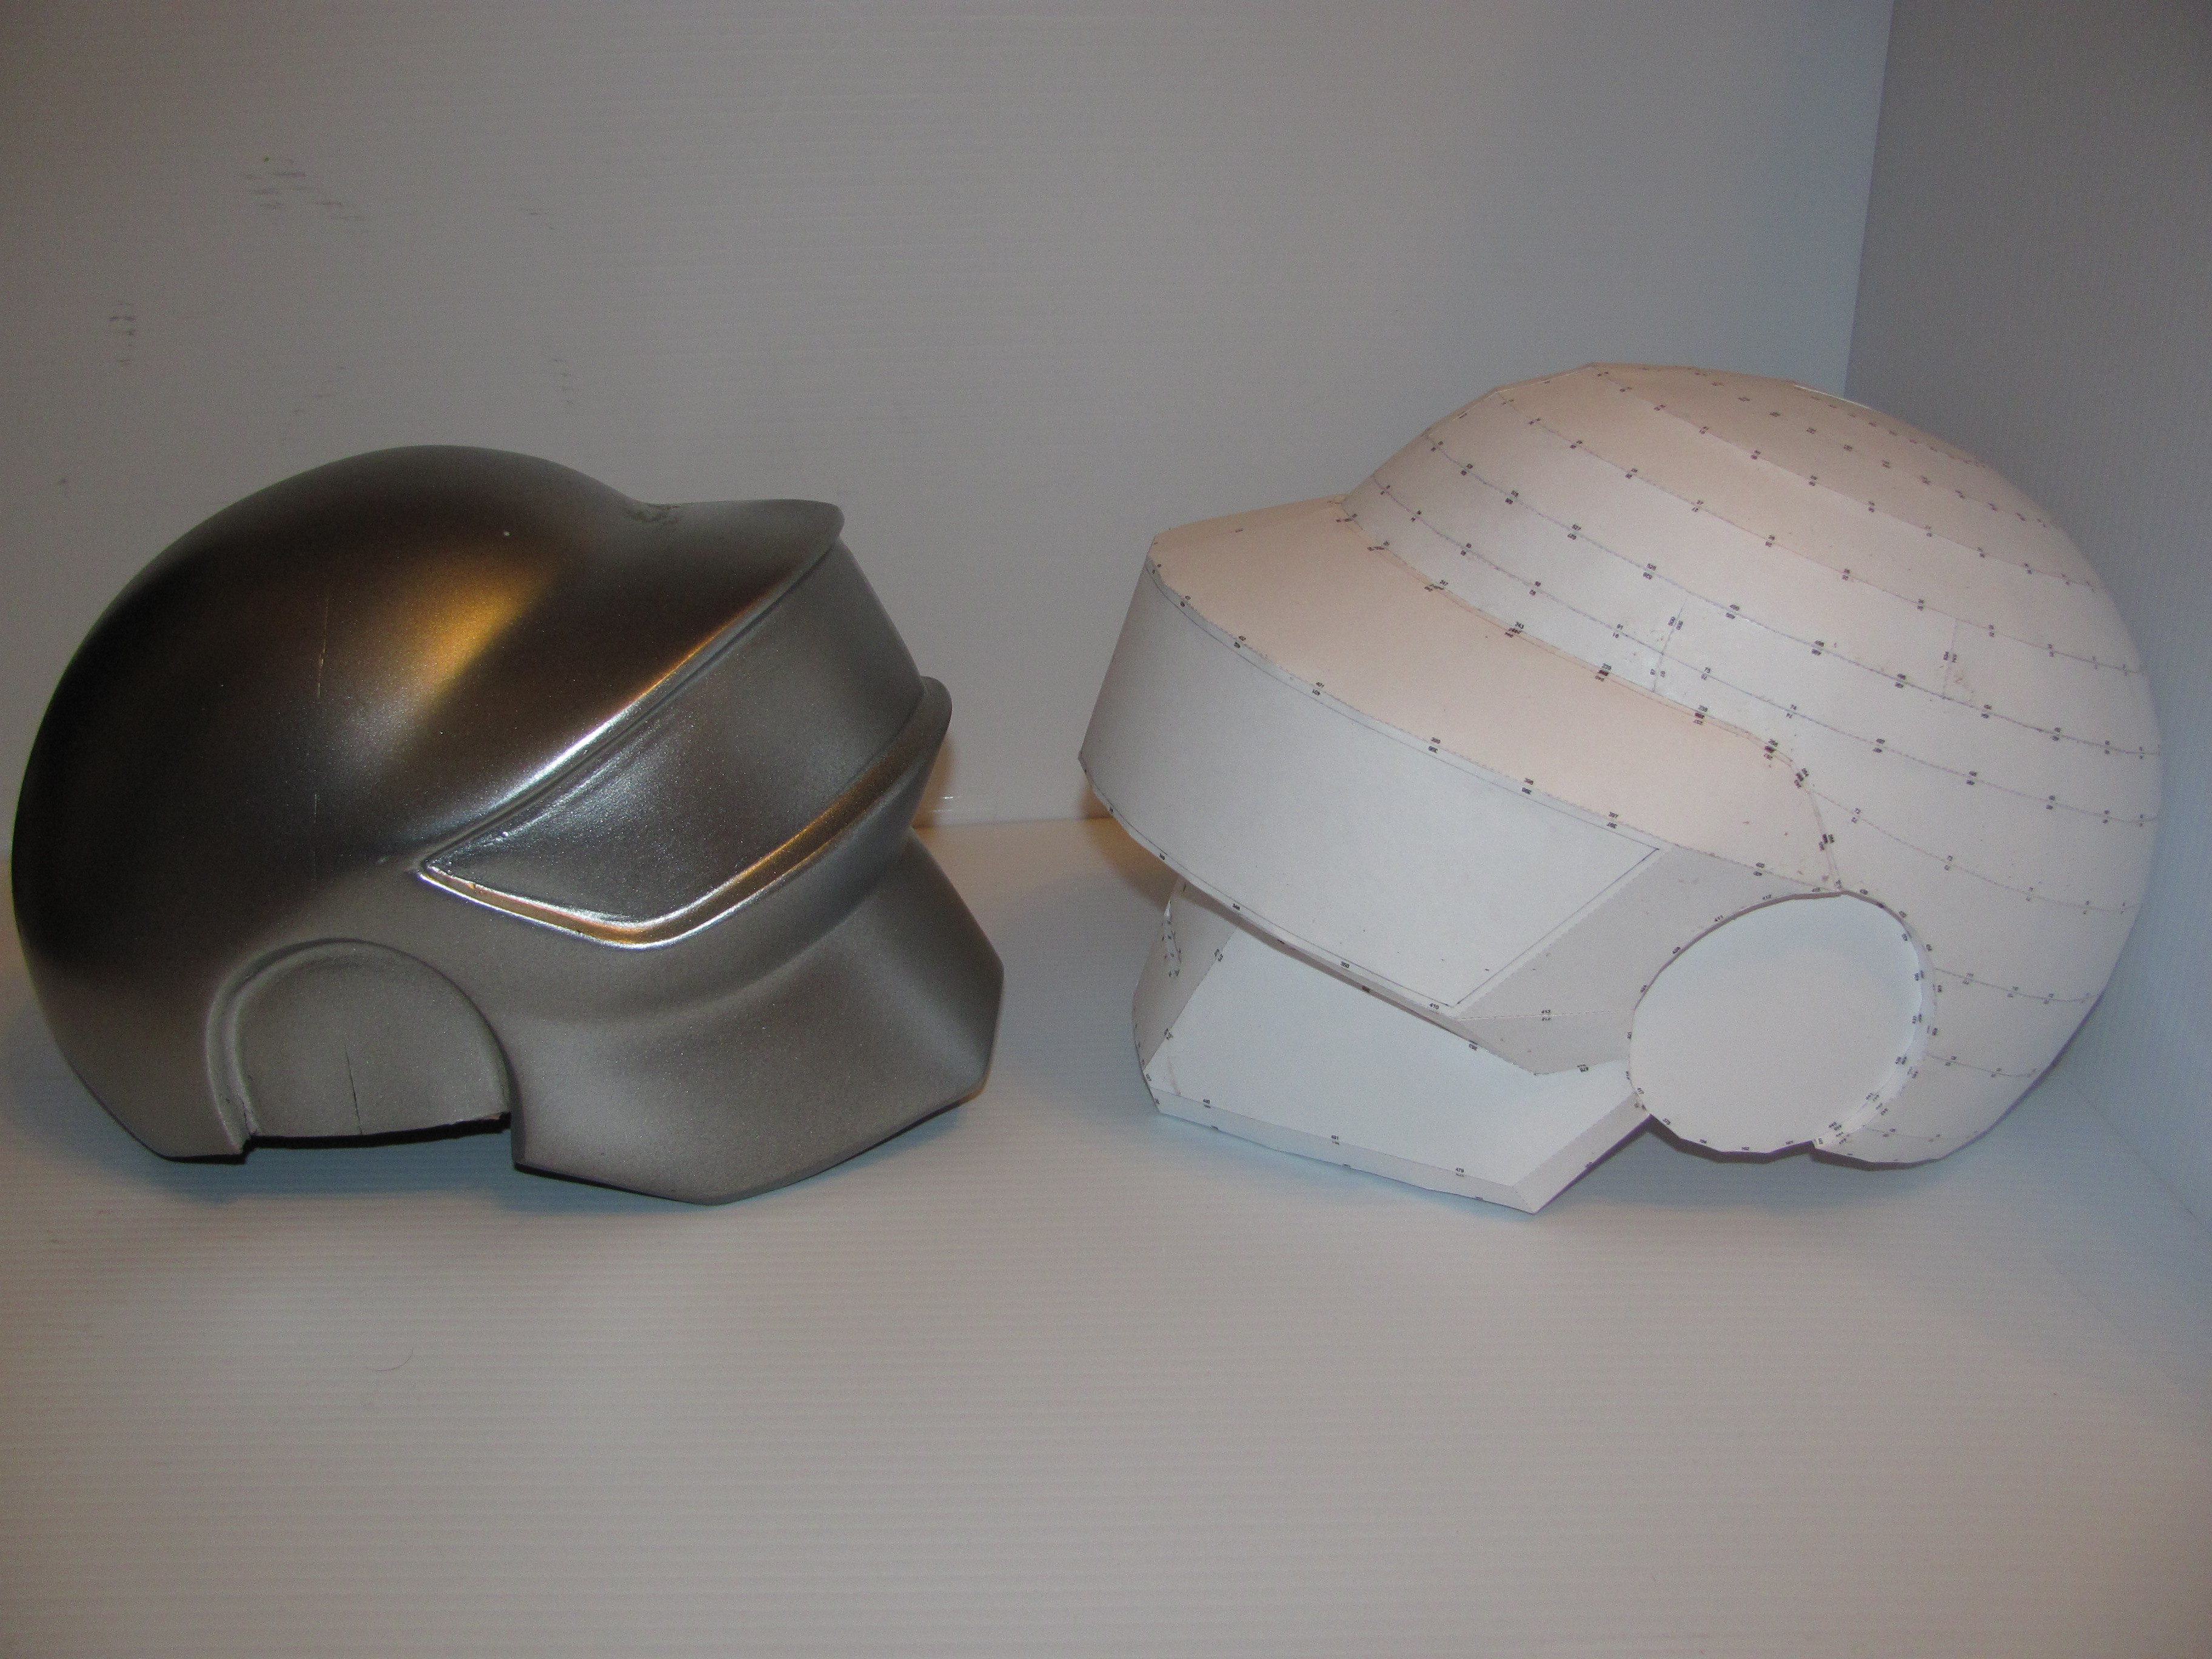 how to make a daft punk helmet out of paper